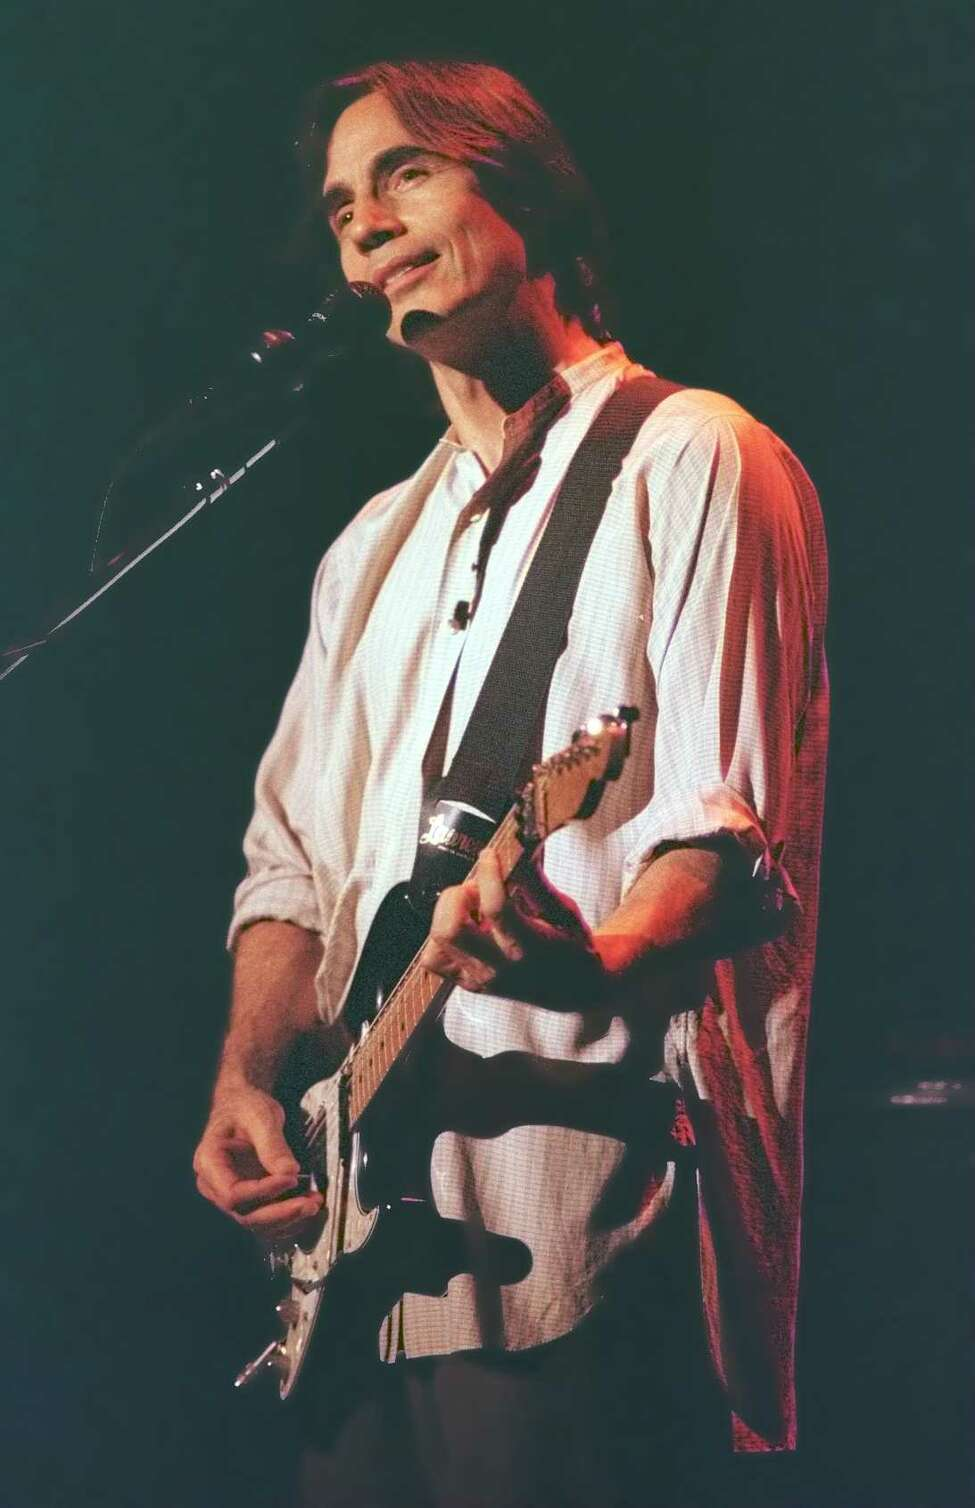 Jackson Browne performs at SPAC, August 4, 1996.